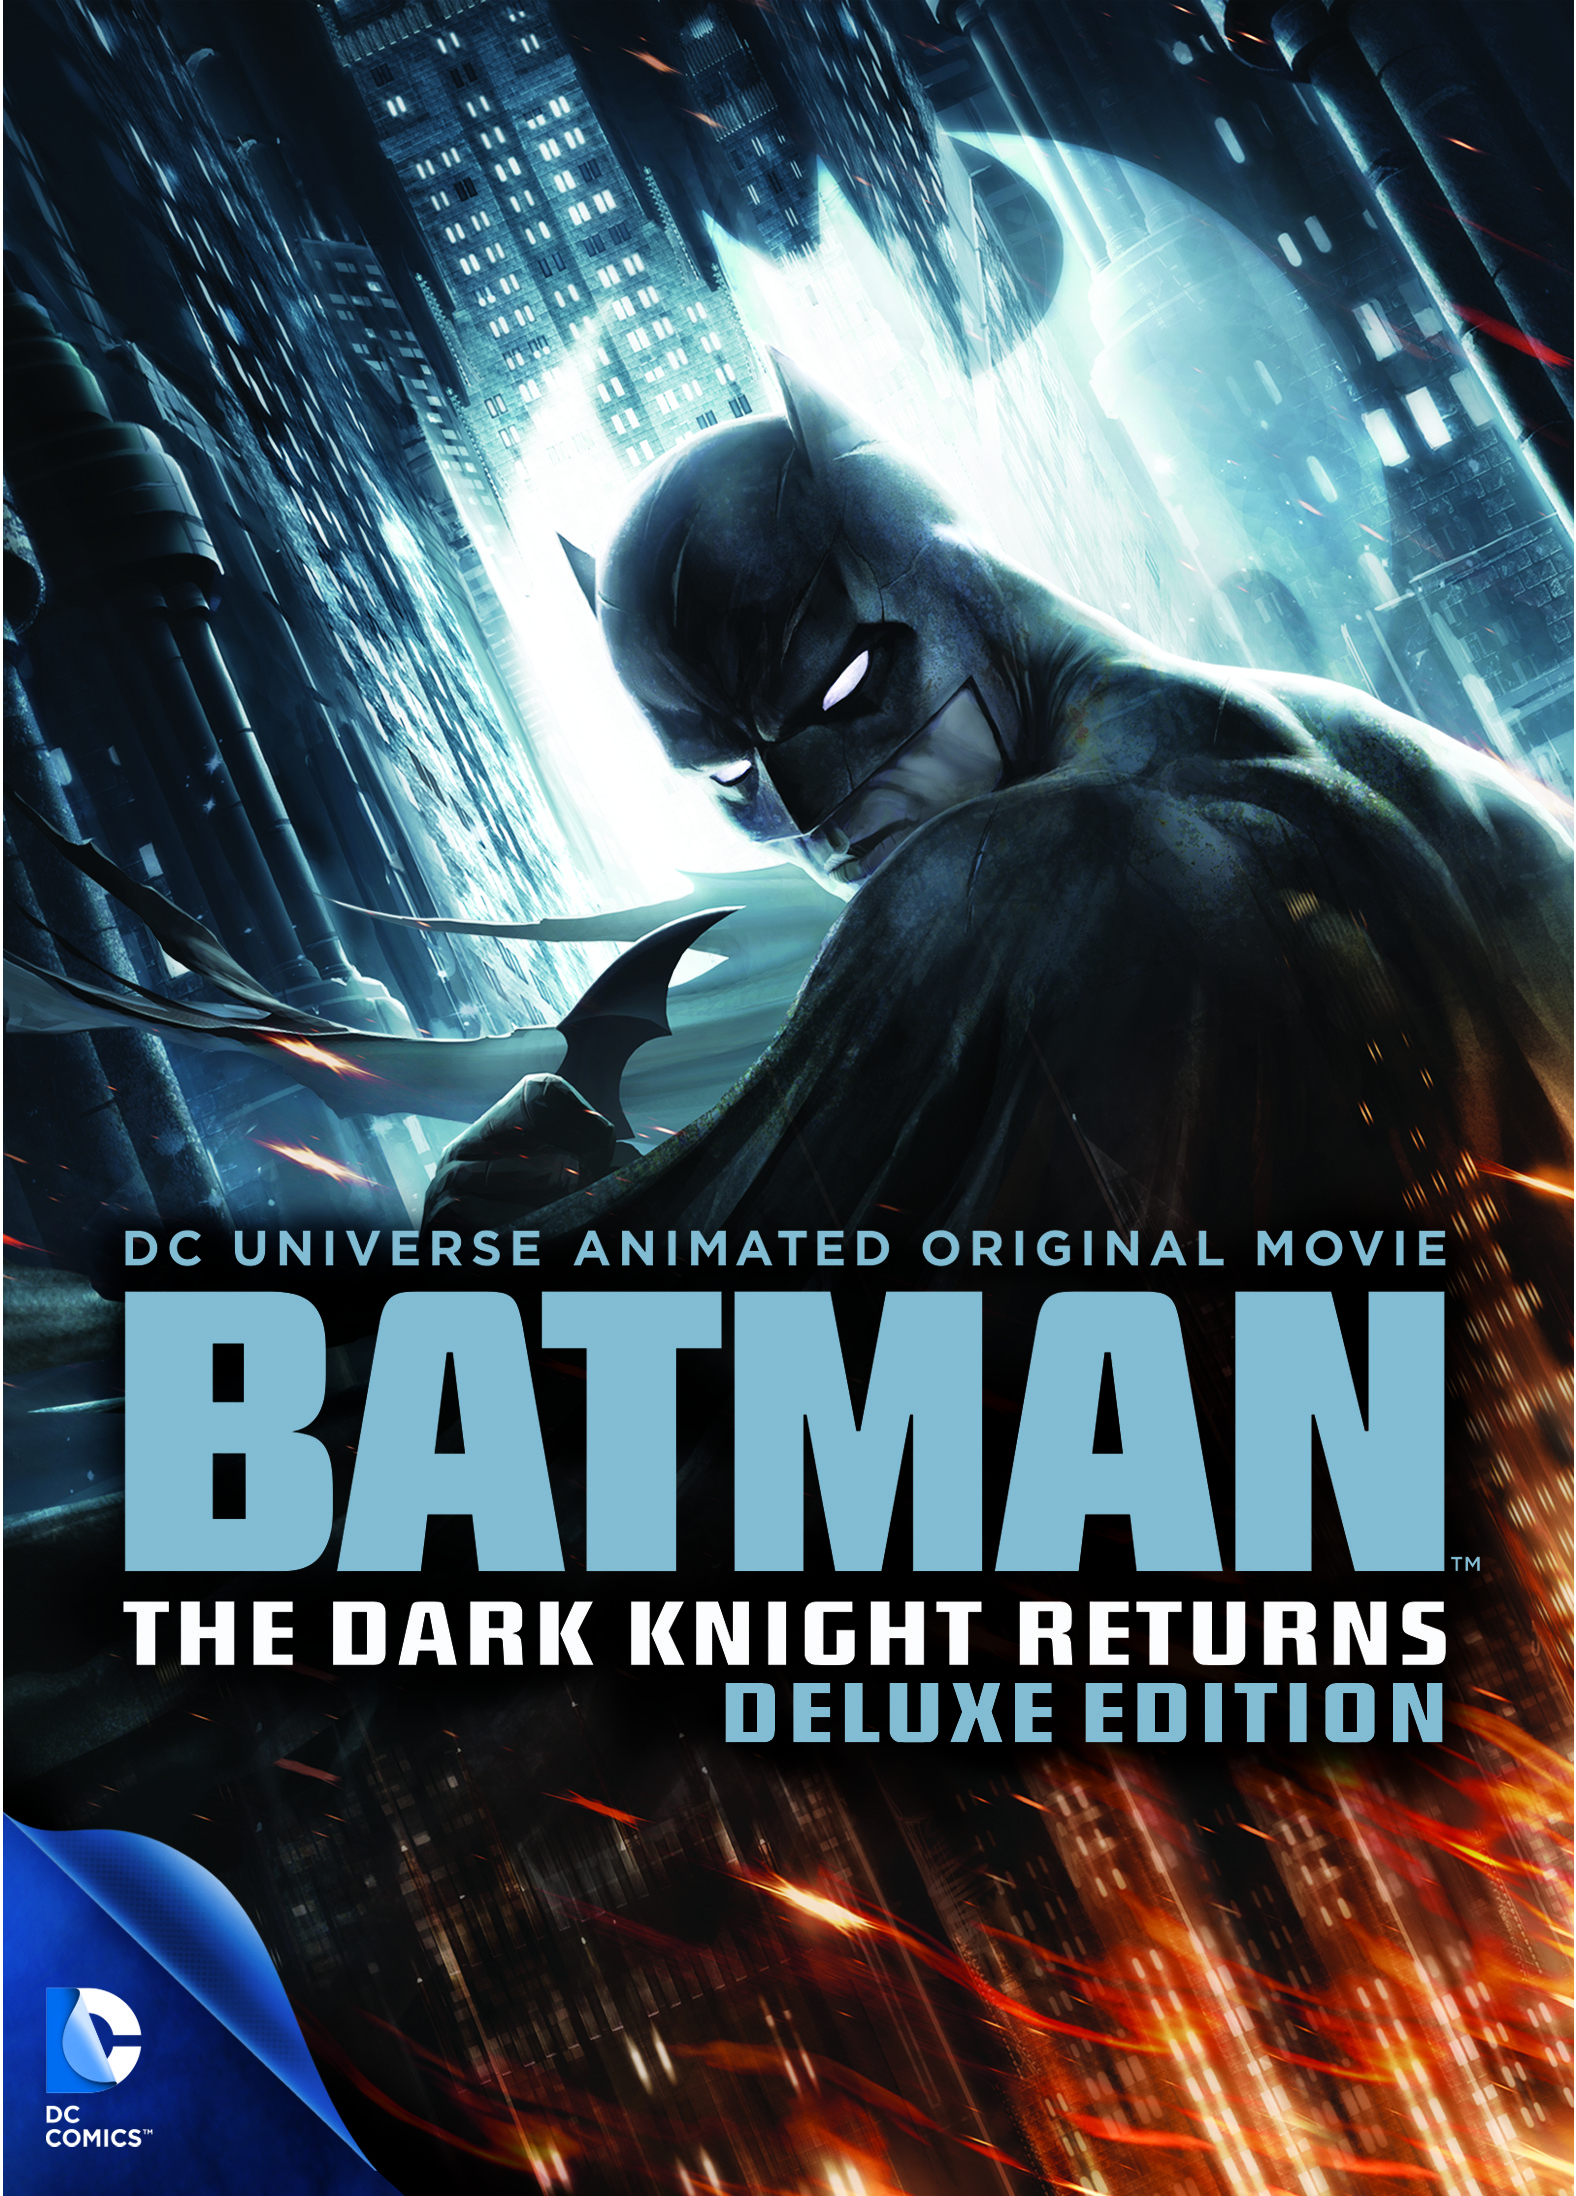 DCU BATMAN THE DARK KNIGHT RETURNS DVD DLX